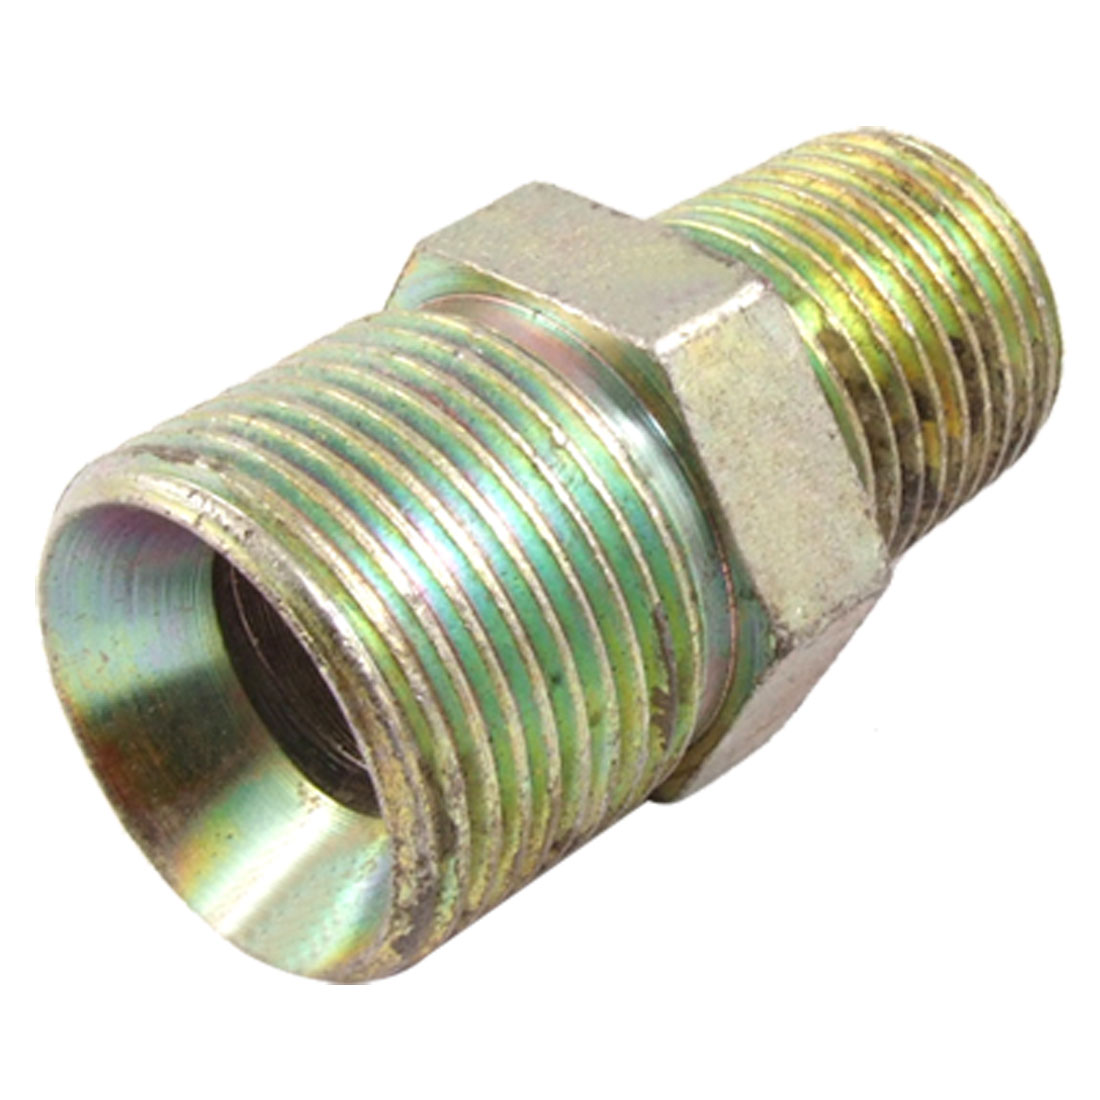 "3/4"" NPT to 1/2"" PT Inverted Flare Straight Male Connector Fuel Line Fitting"